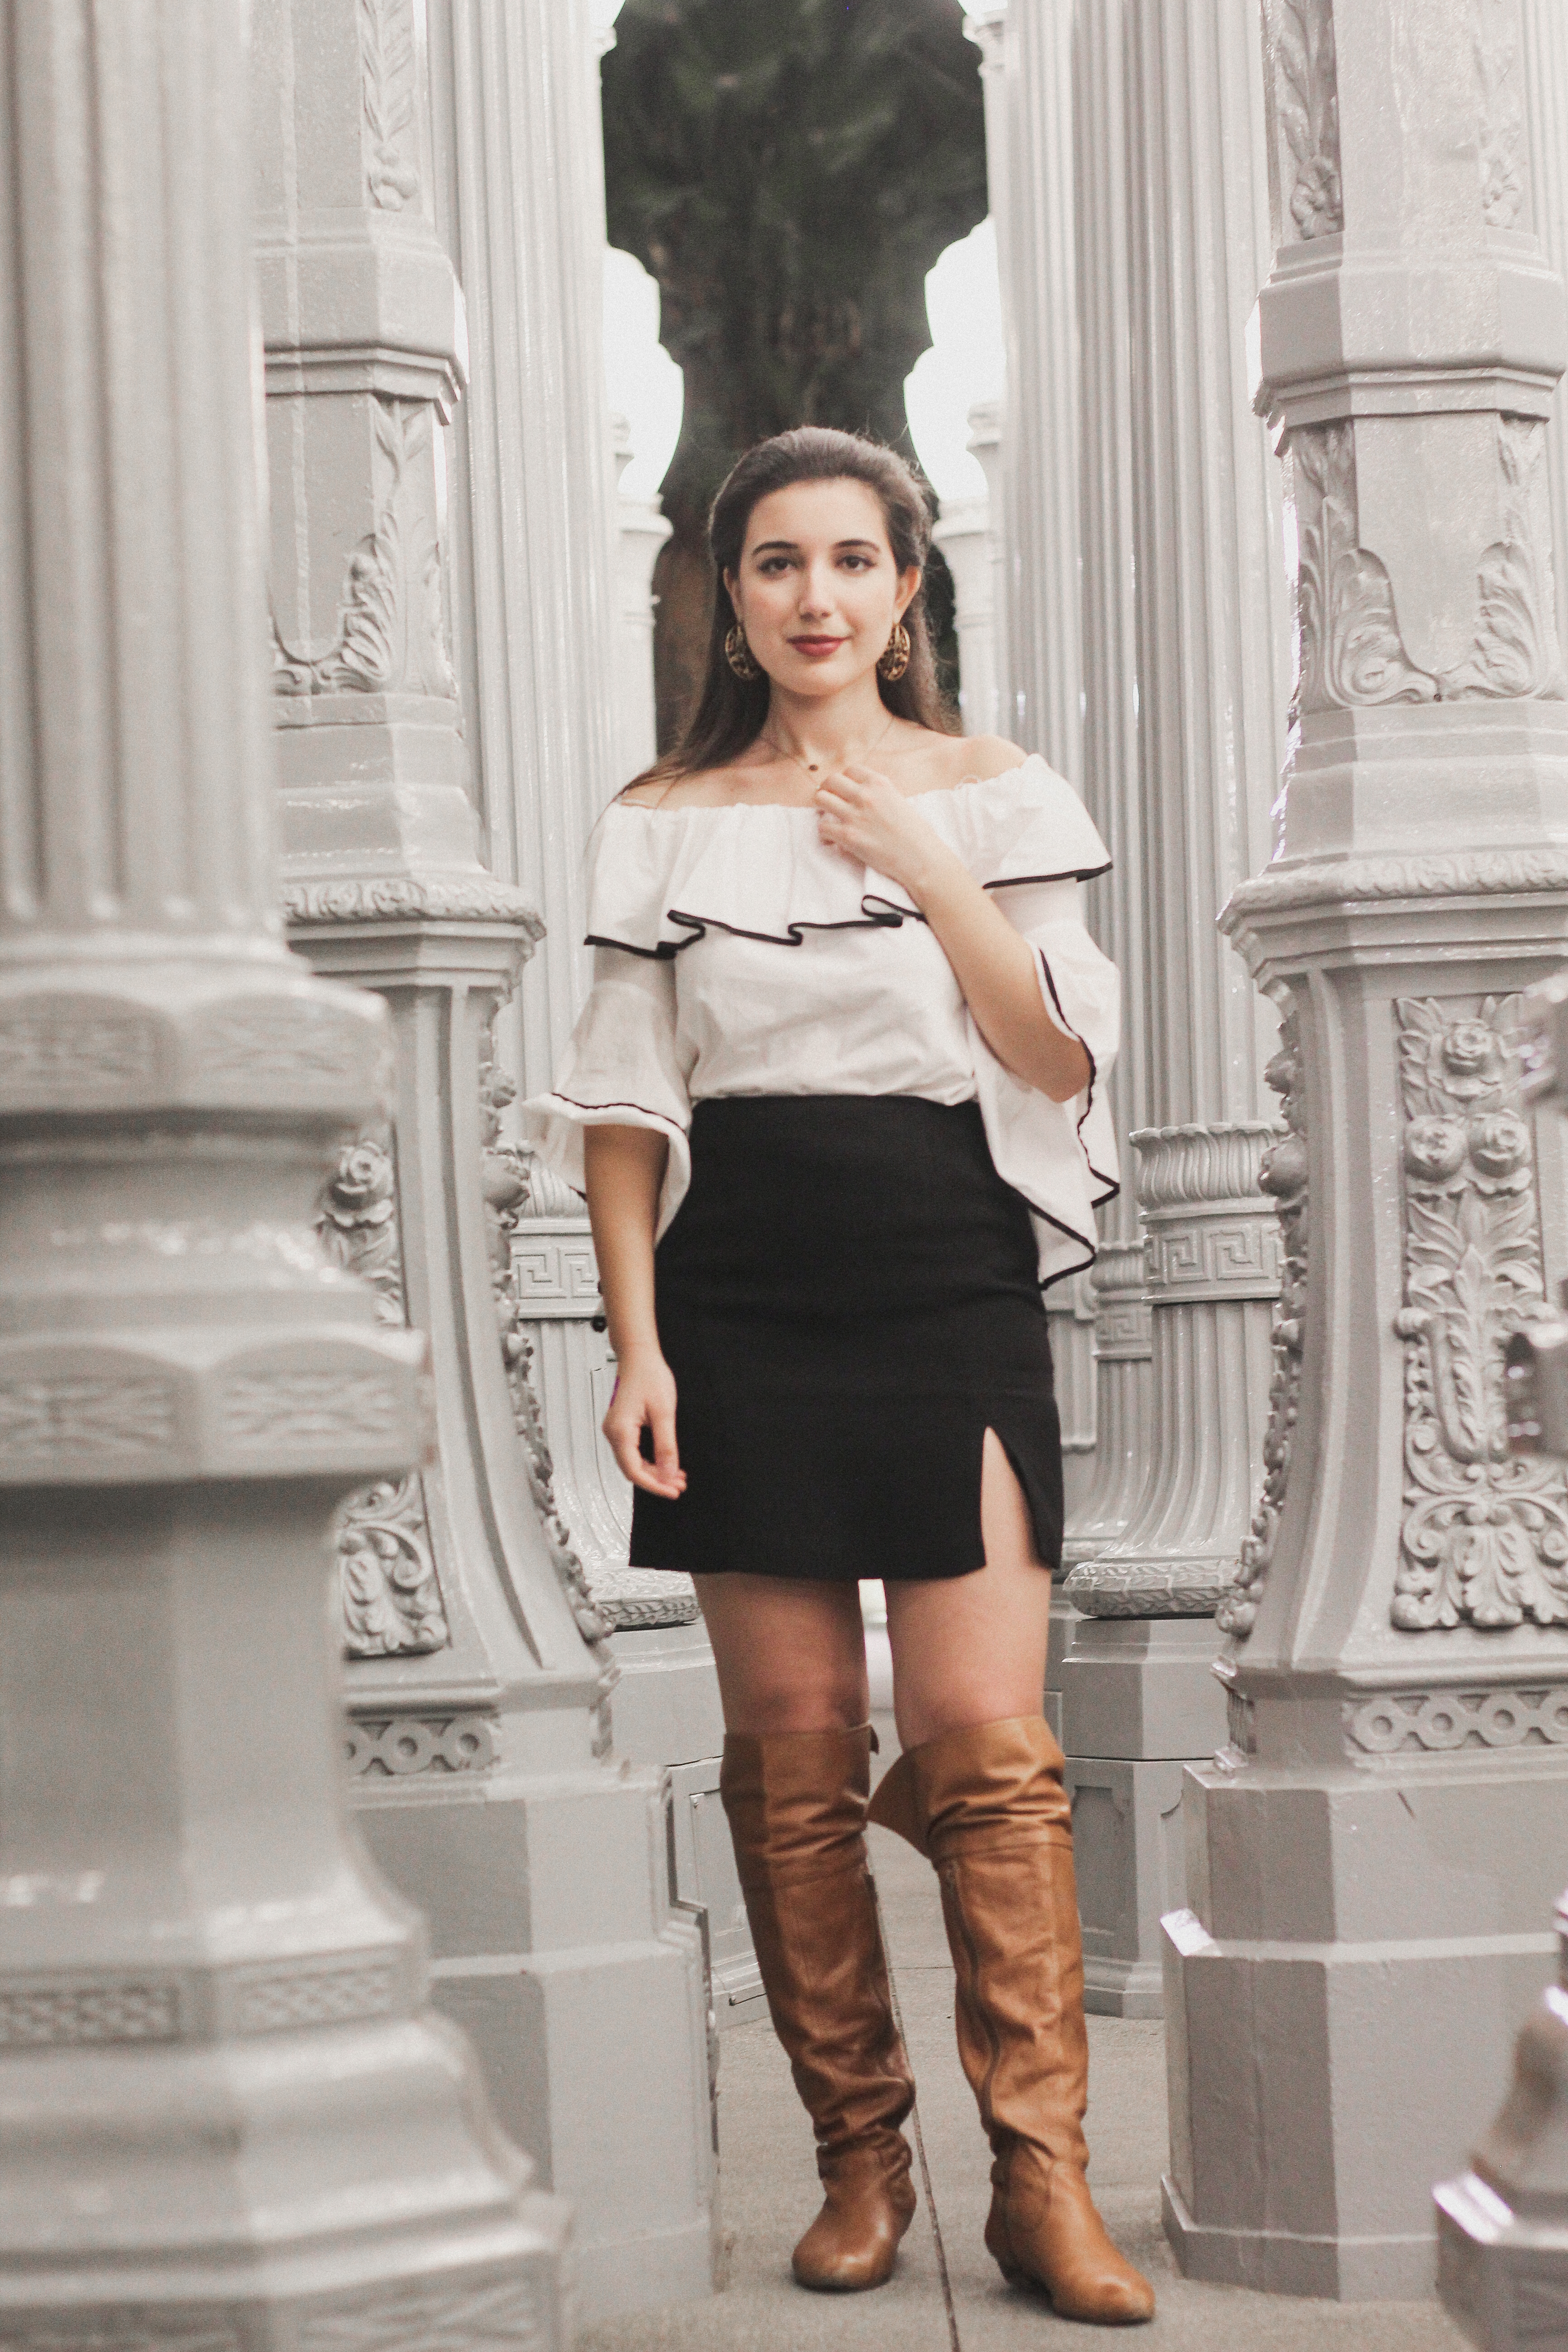 LA, Los Angeles, LACMA, Los Angeles County Museum of Art, lookbook, fashion blogger, ootd, ootn, lotd, belle sleeves, off the shoulder, black skirt, gold hoop earrings, Zara, Juicy Couture, LA street style, street style, influencer, fashion, style, fall fashion, fall style, photoshoot